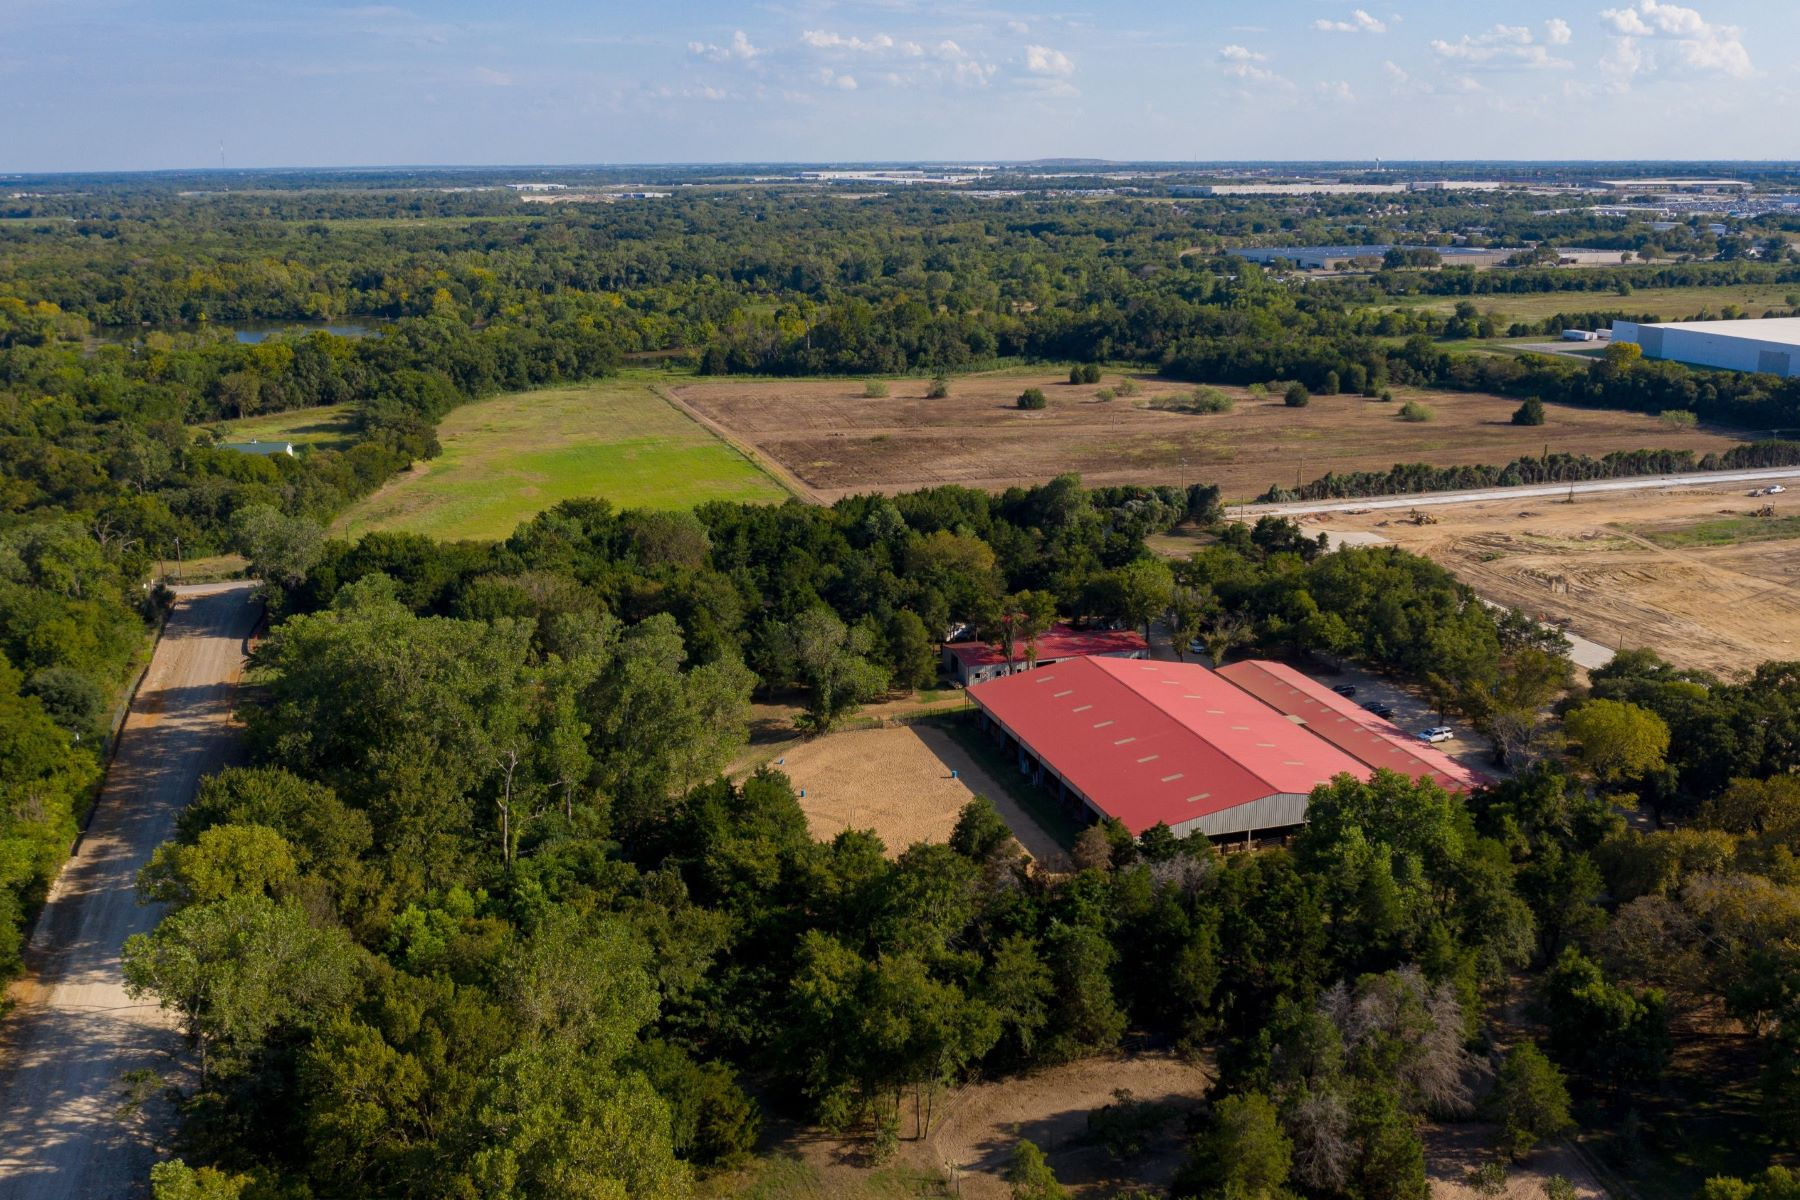 Farm / Ranch / Plantation for Sale at State-of-the-Art Equestrian Facility Just 10 Minutes from Downtown Dallas 1349 E. Cleveland Street Hutchins, Texas 75141 United States